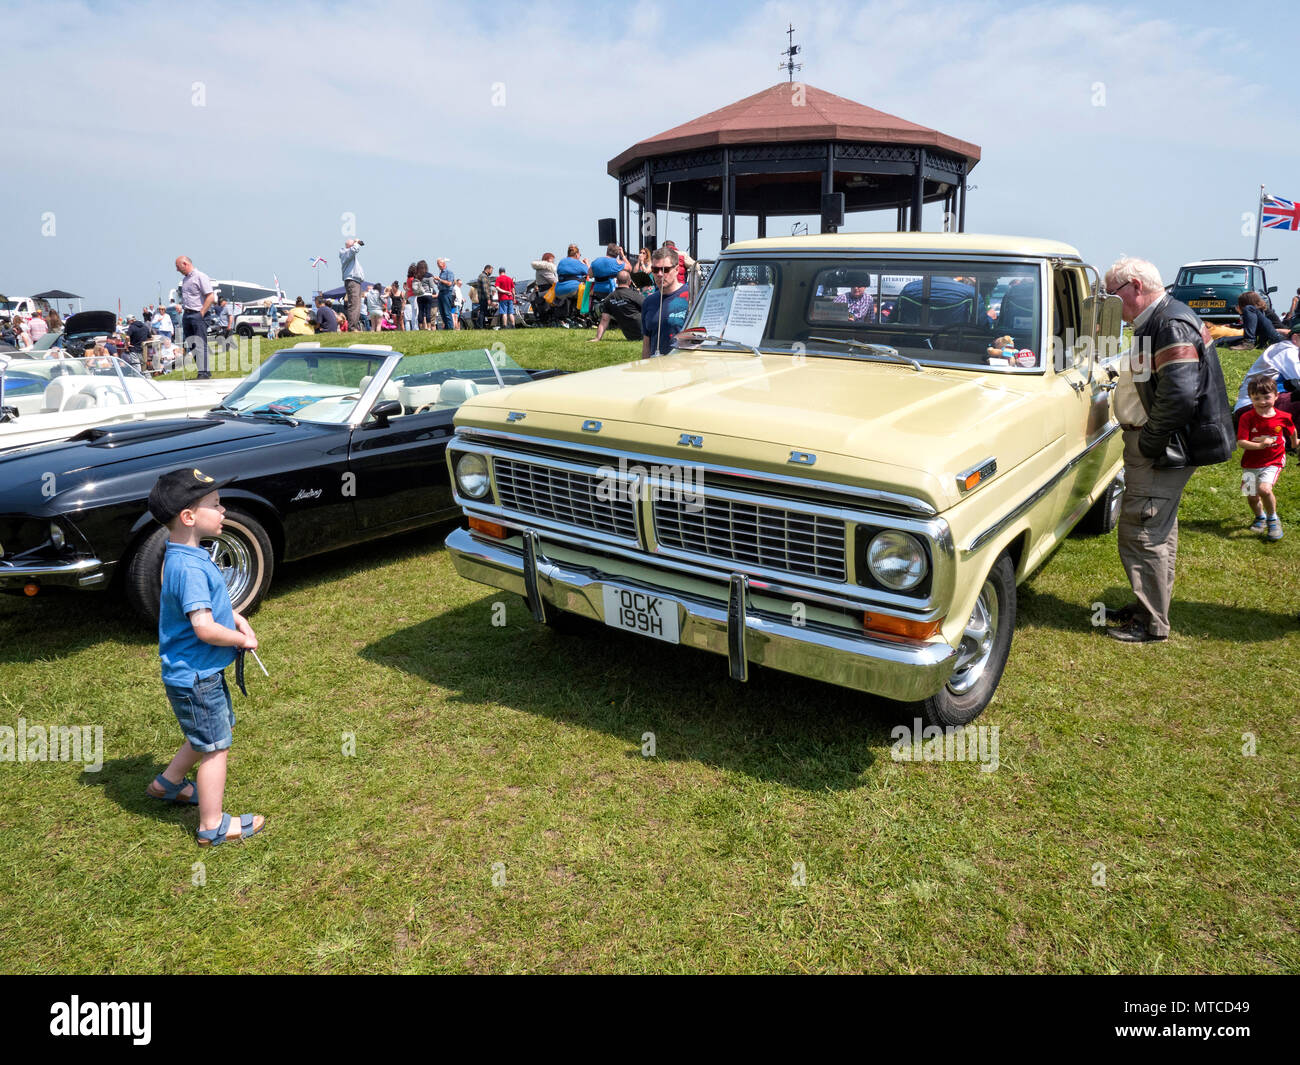 Deal classic car Show 2018 - Stock Image